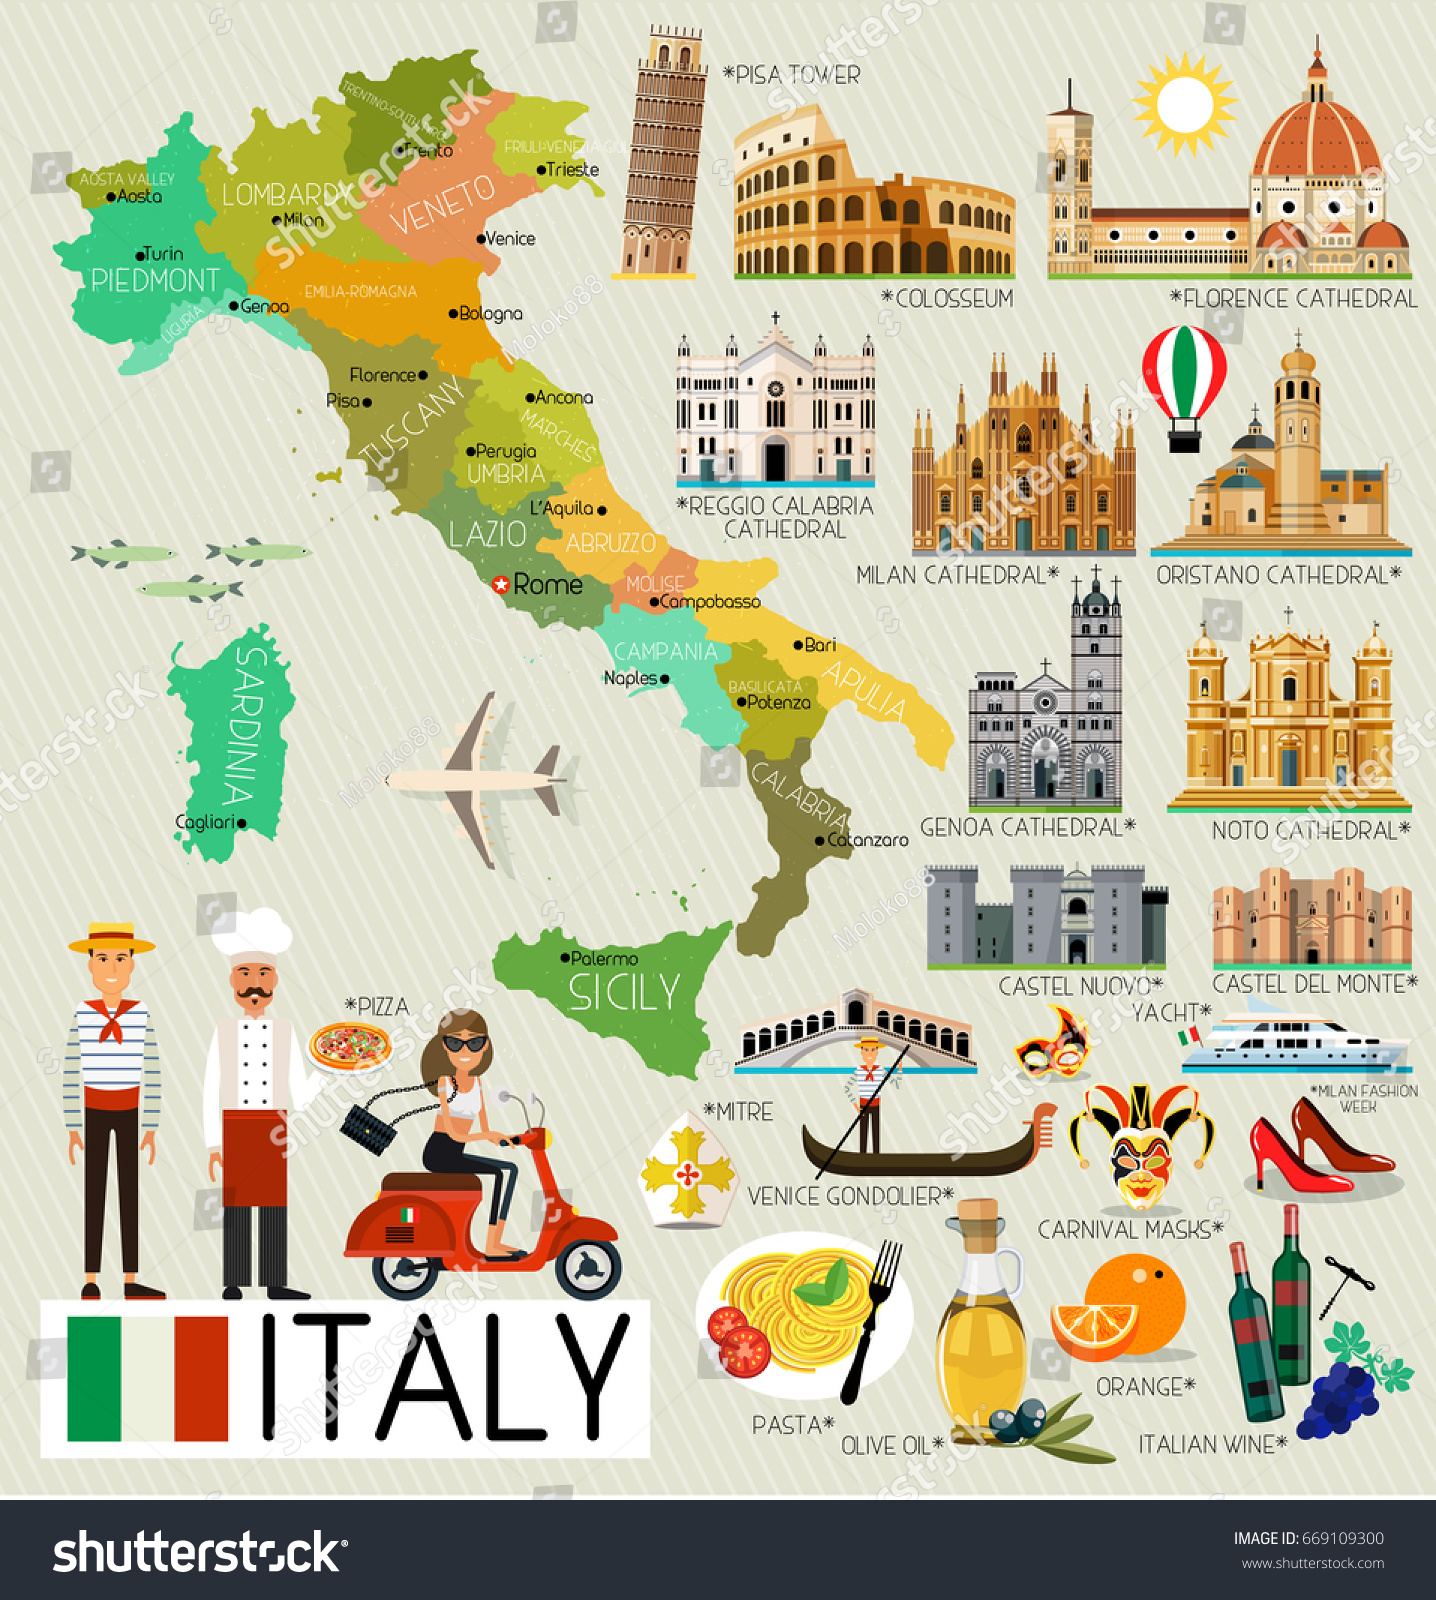 Map Italy Travel Iconsitaly Travel Map Stock Vector ...